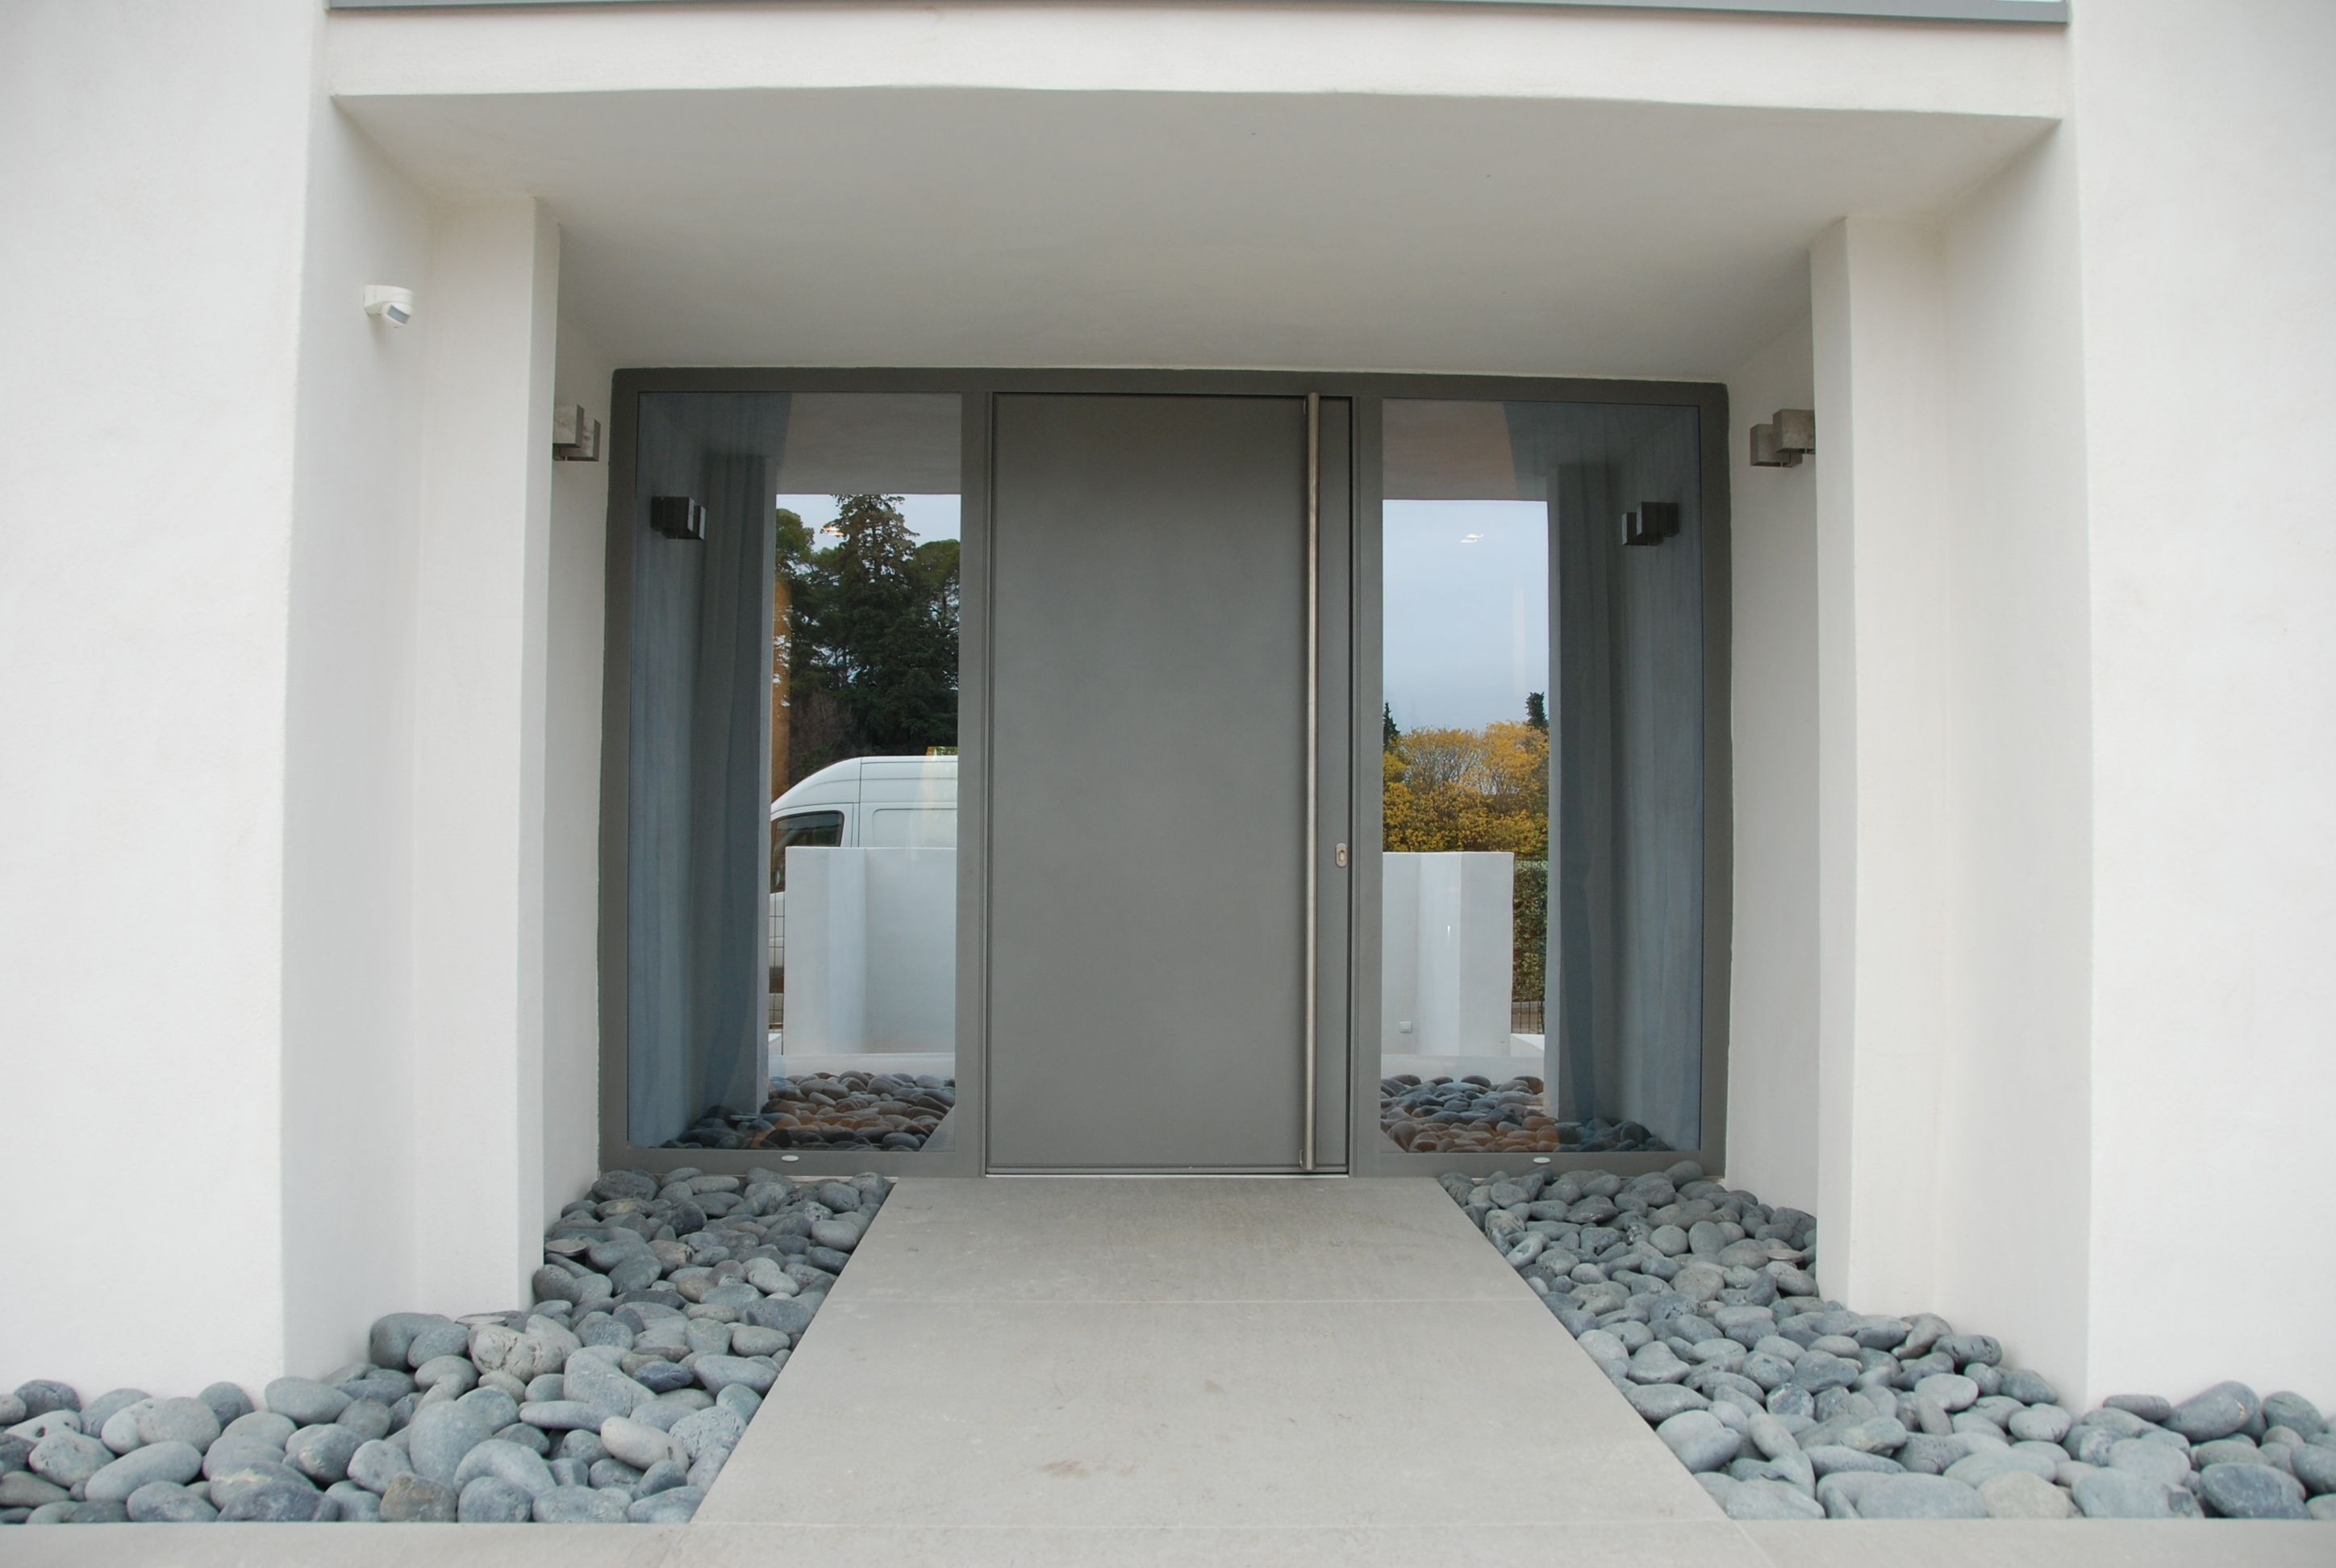 Porte d 39 entr e covermetal villa contemporaine architecte jean michel villot porte d for Porte entree alu contemporaine